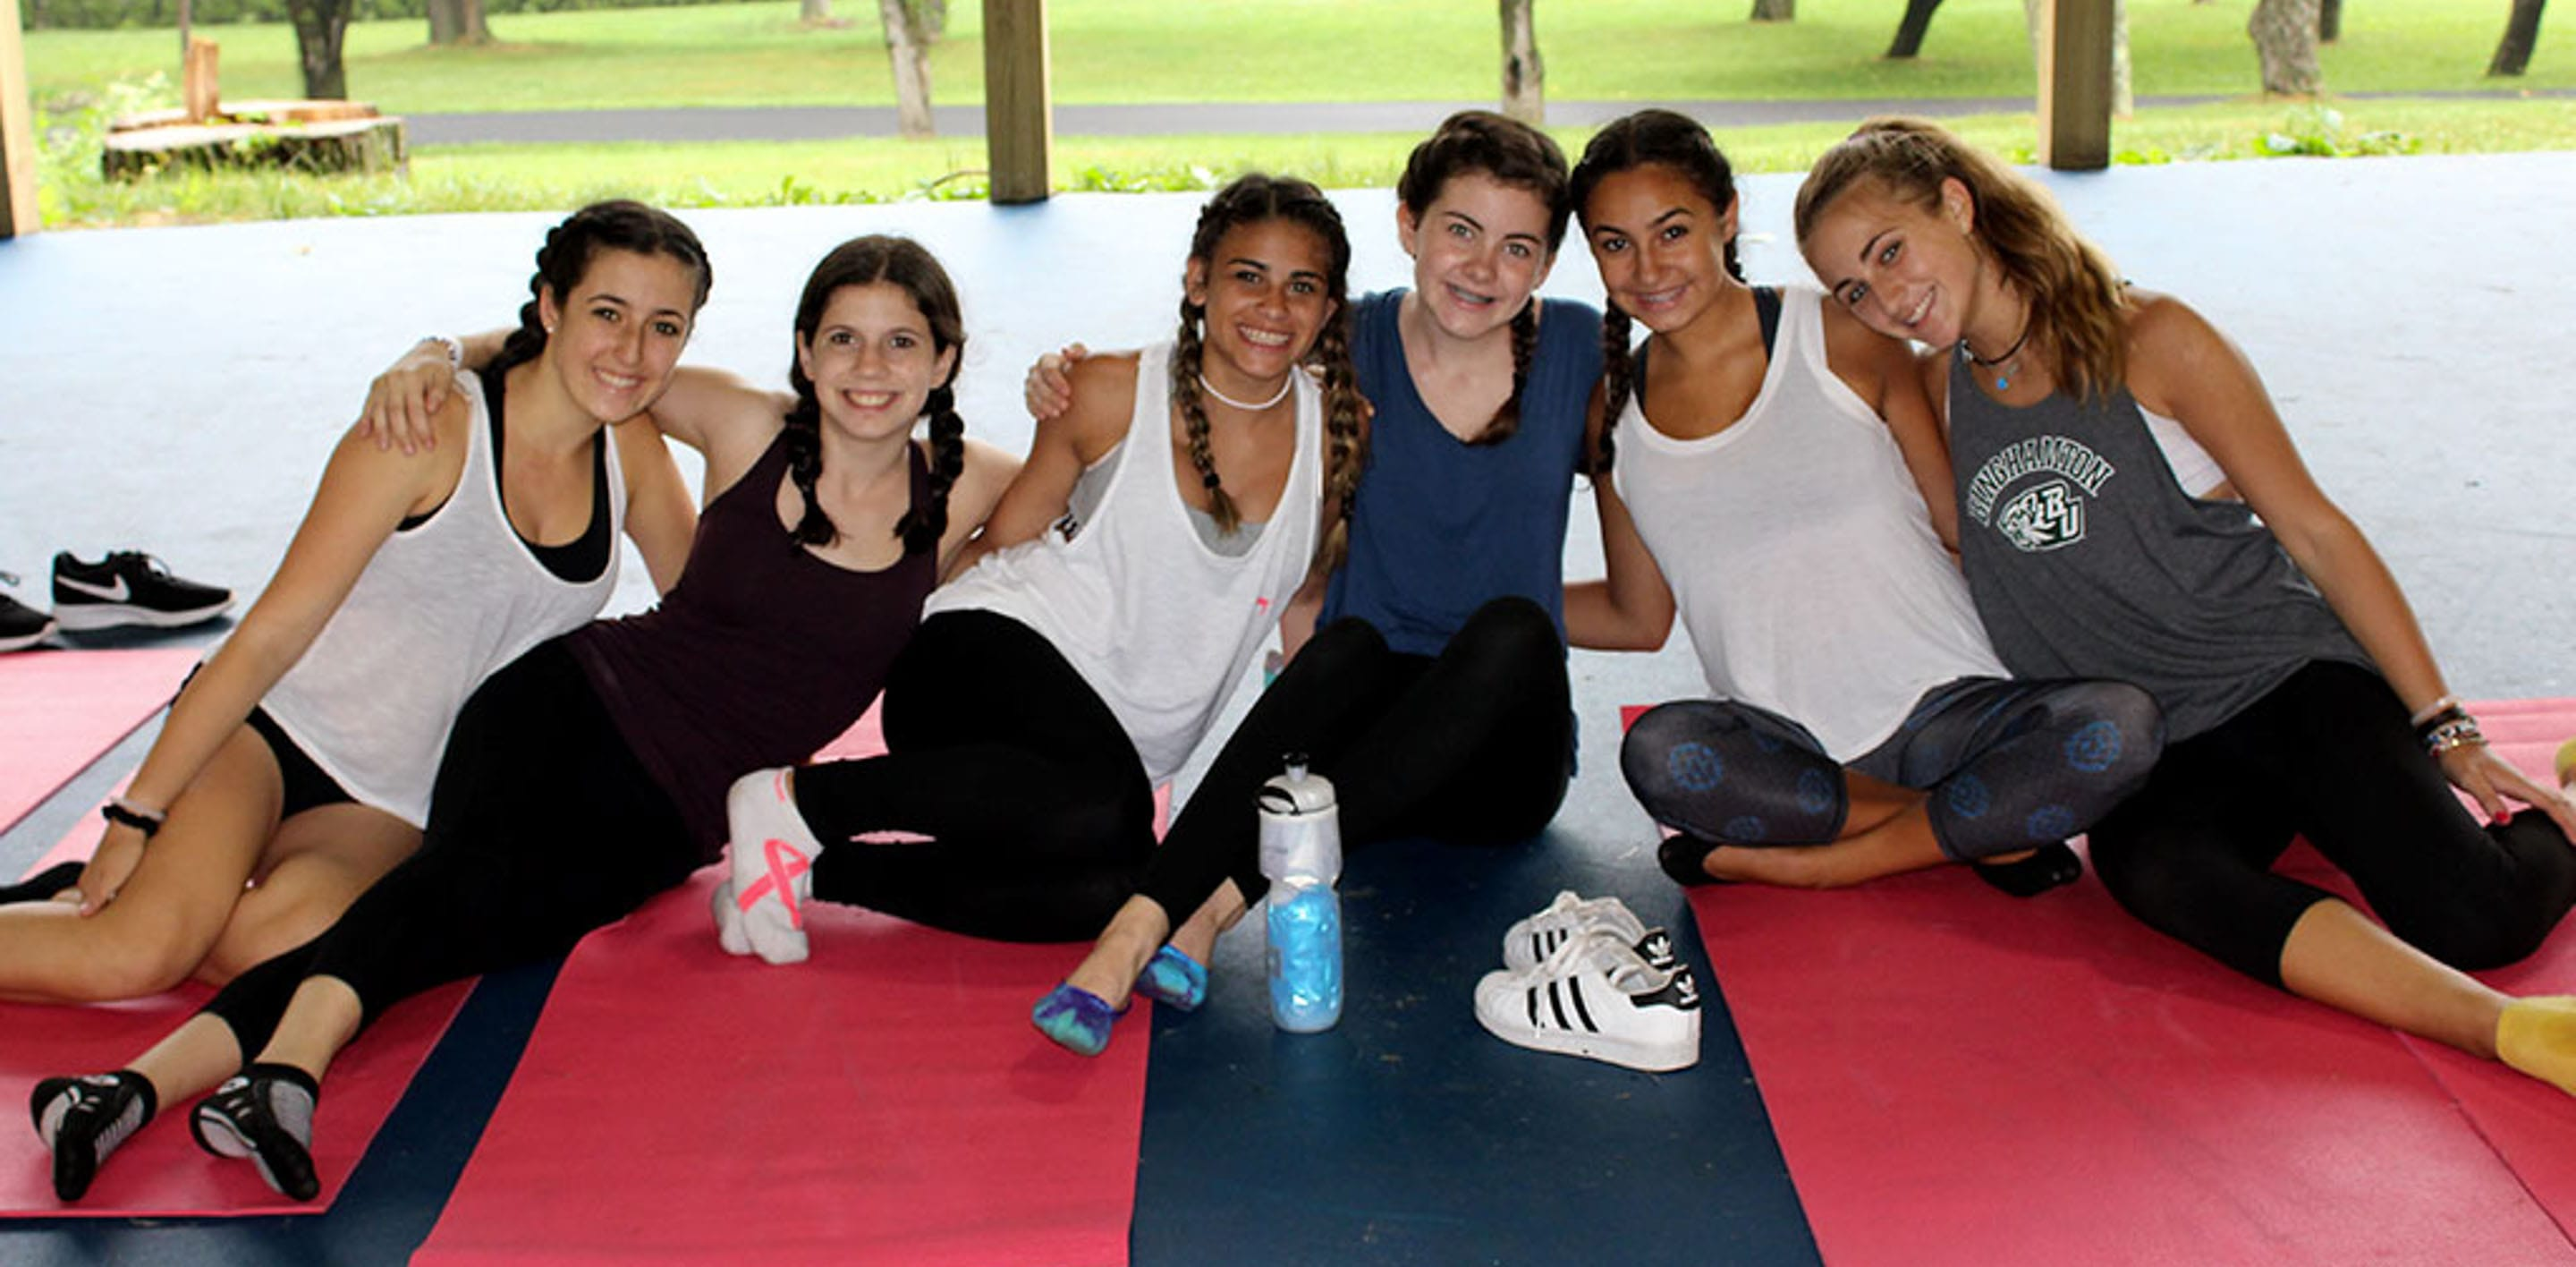 Teen girls sitting on yoga mats